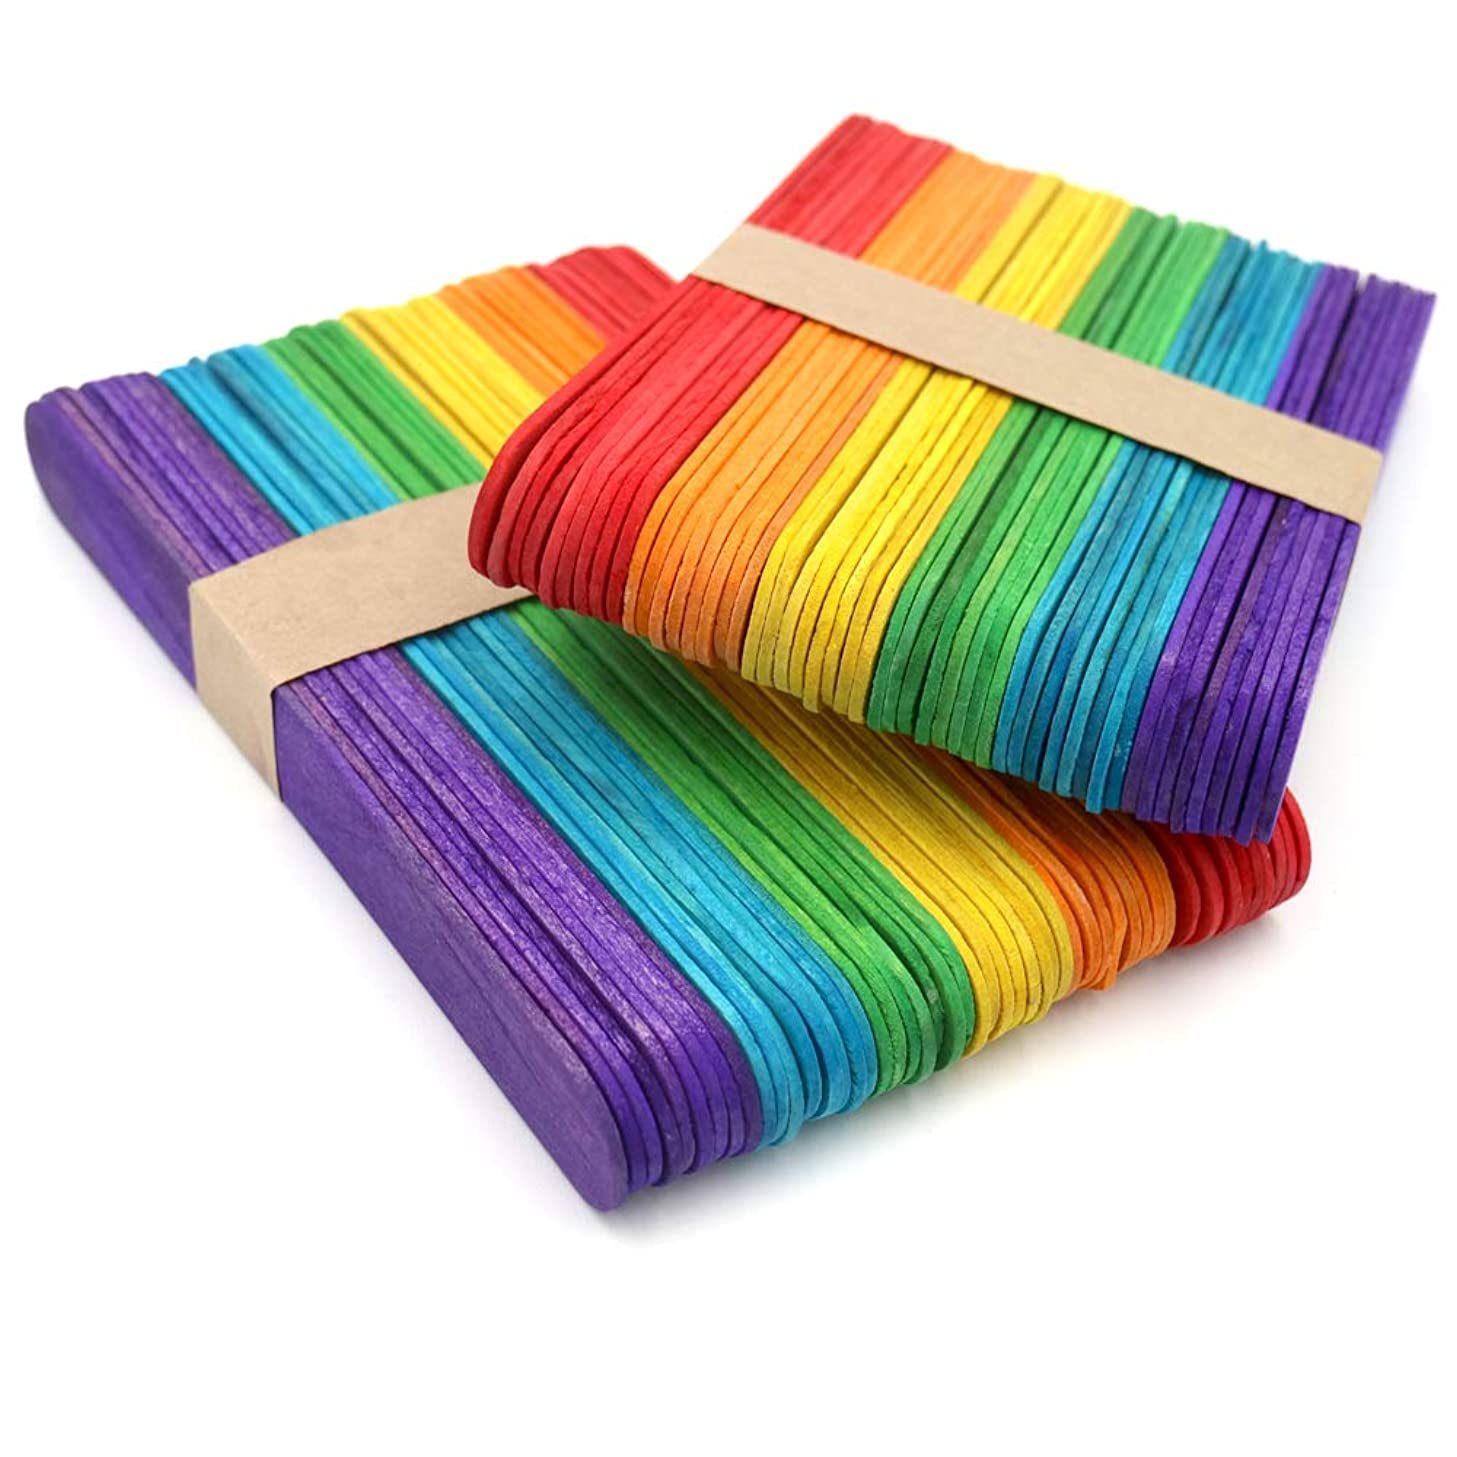 100 Pcs Colored Wood Craft Popsicle Sticks for DIY Creative Designs 6 inch